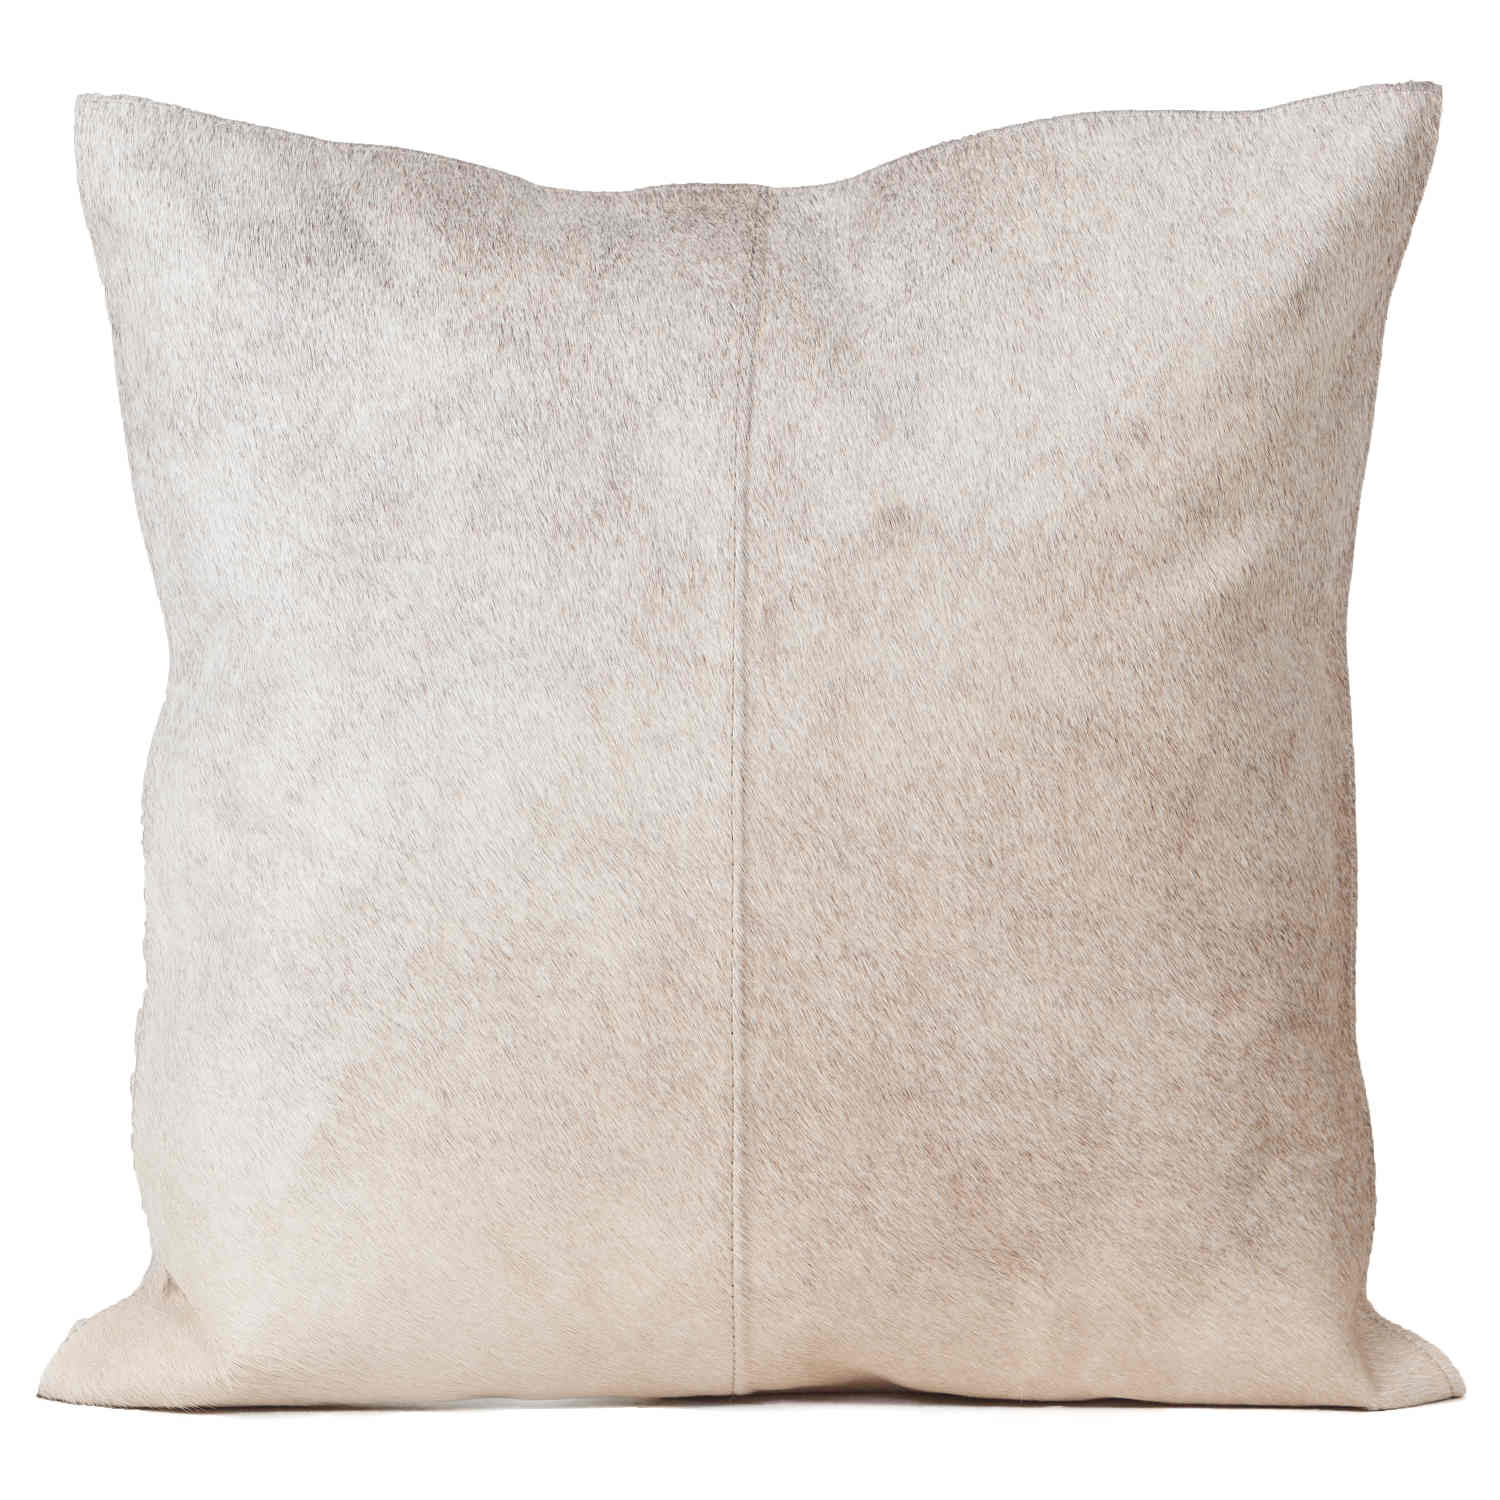 Fibre by Auskin Cowhide Natural Grey Decorative Pillows